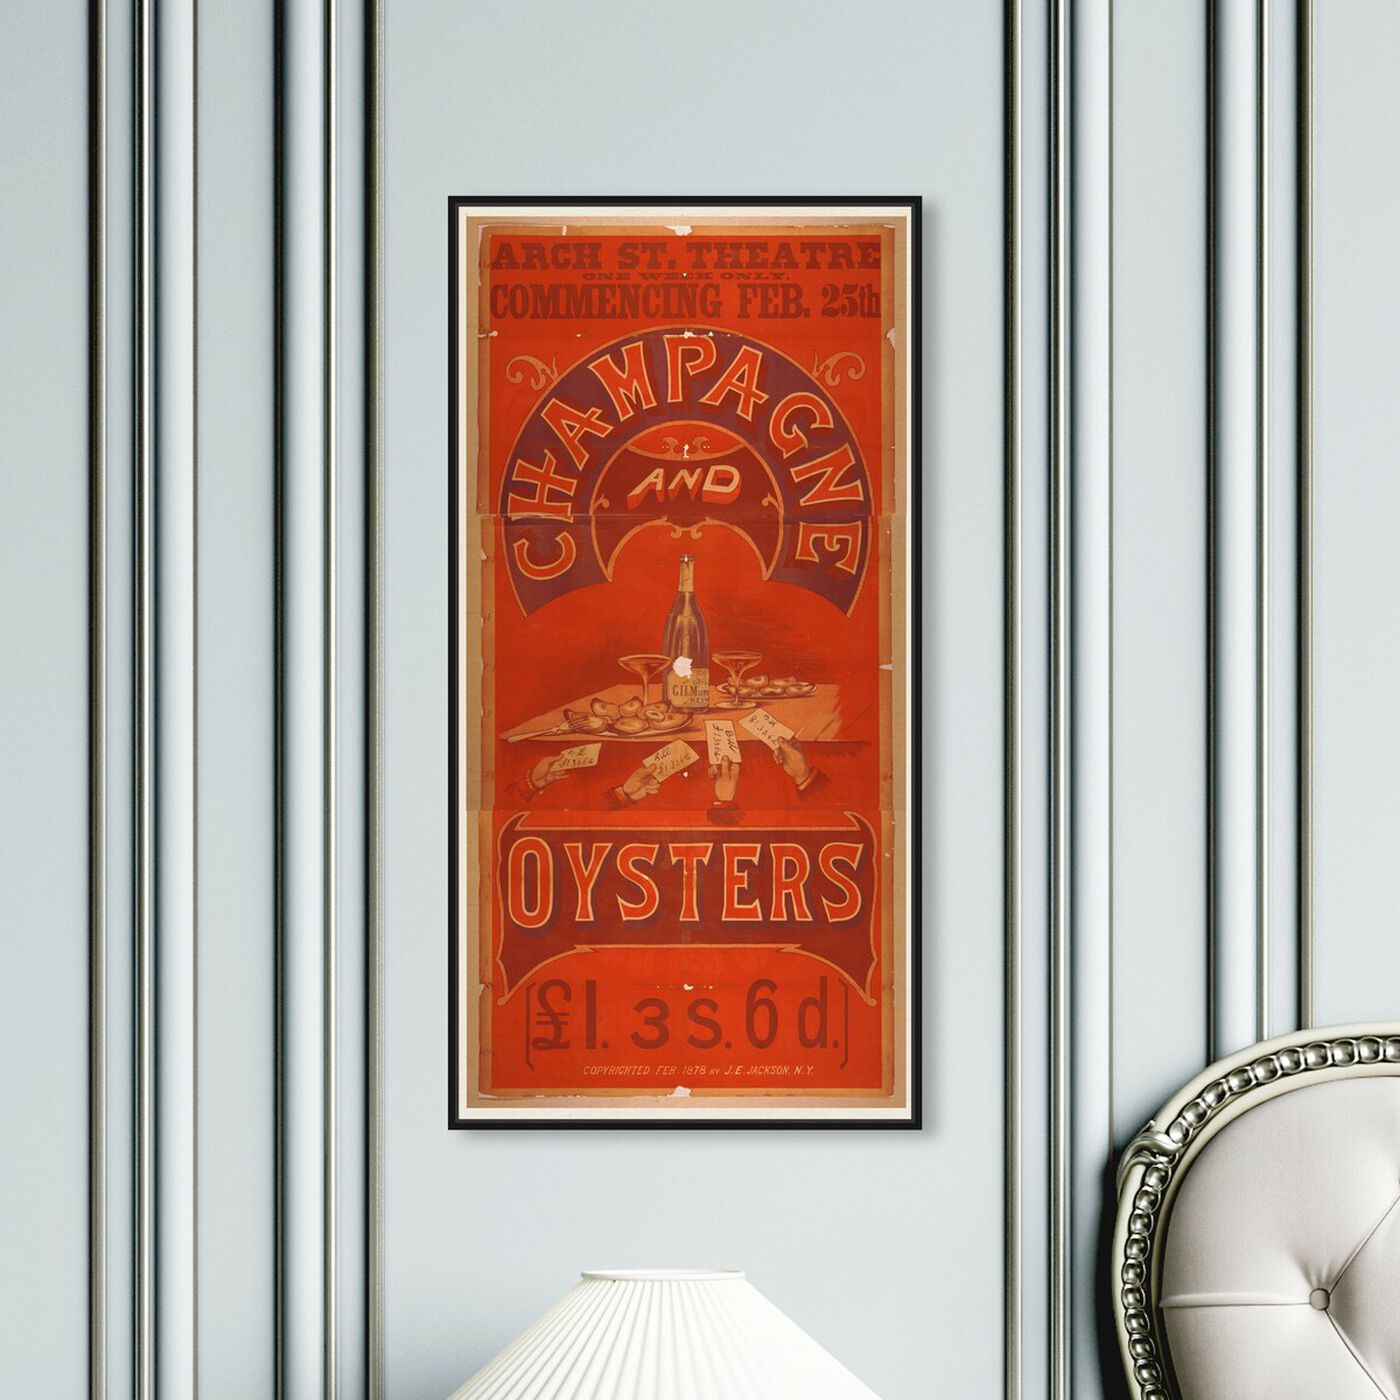 Hanging view of Champagne and Oysters featuring advertising and posters art.